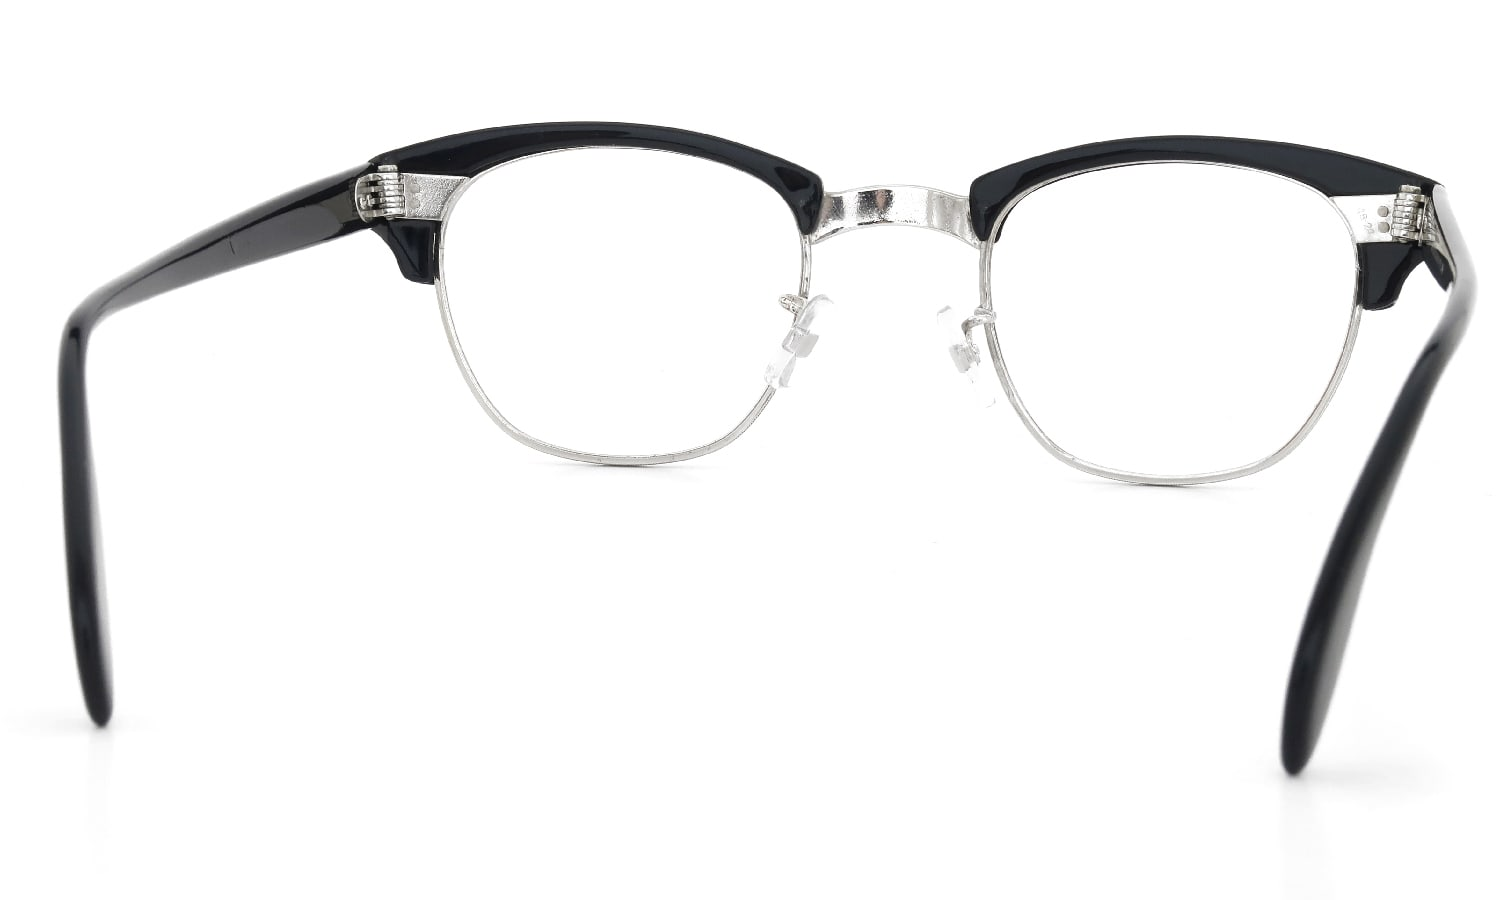 American Optical 1960s Brow Combination AO鋲 Black/Silver 48-24